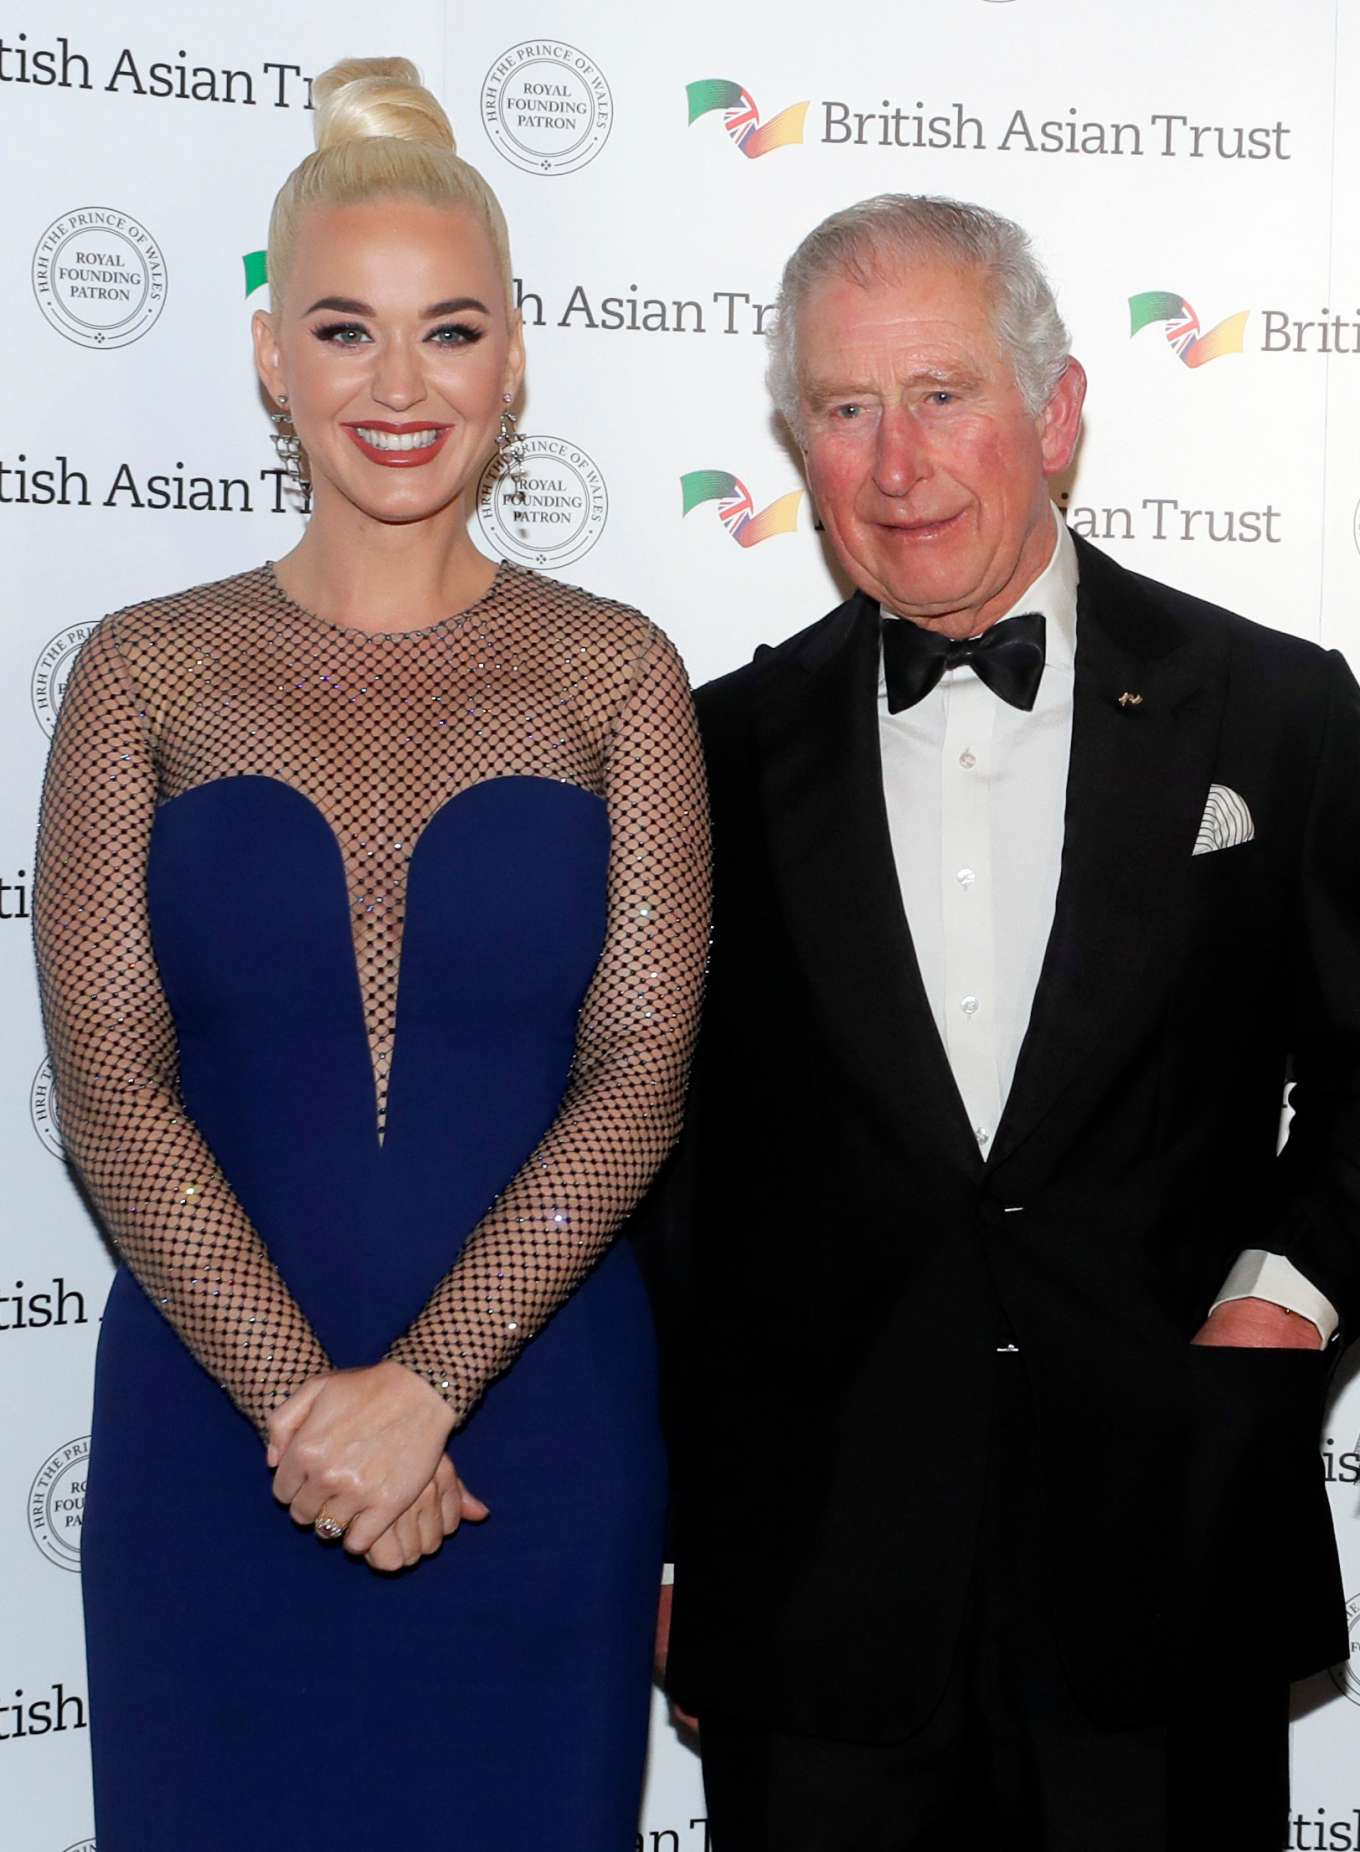 Katy Perry - British Asian Trust Reception in London